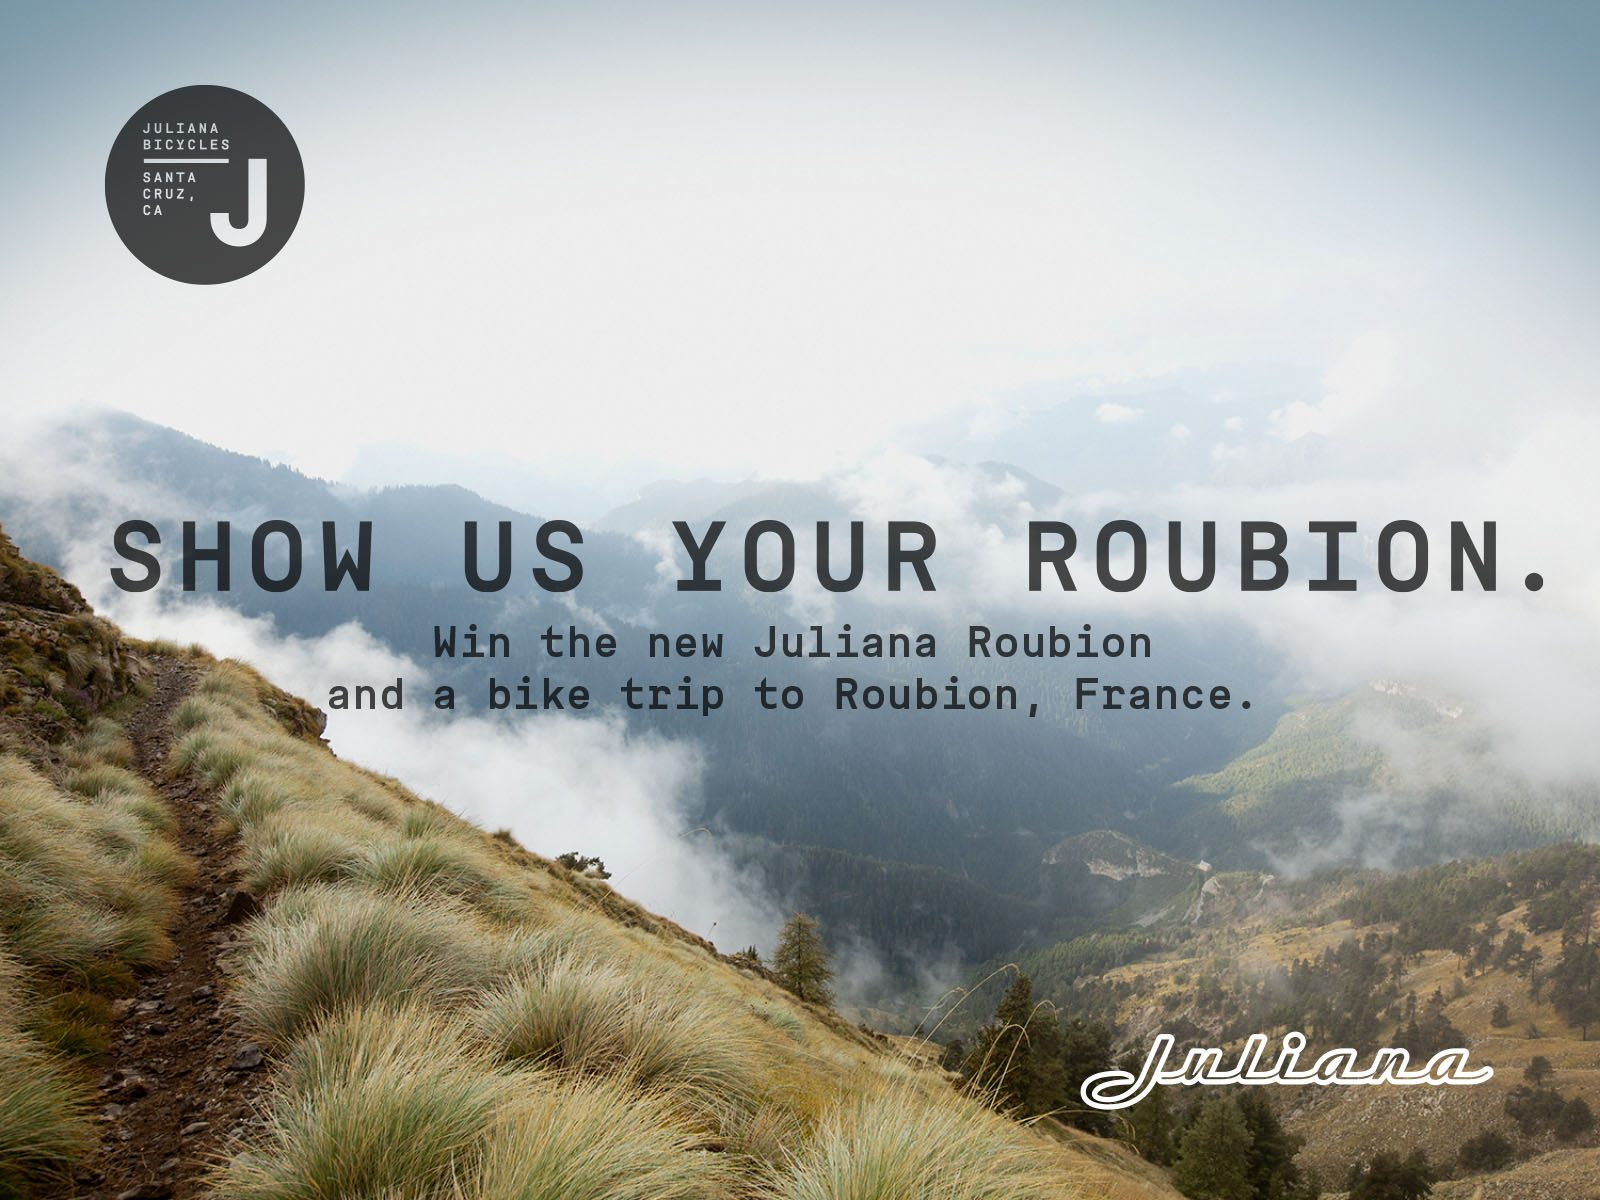 ROUBION LAYOUT FOR NEWSLETTER